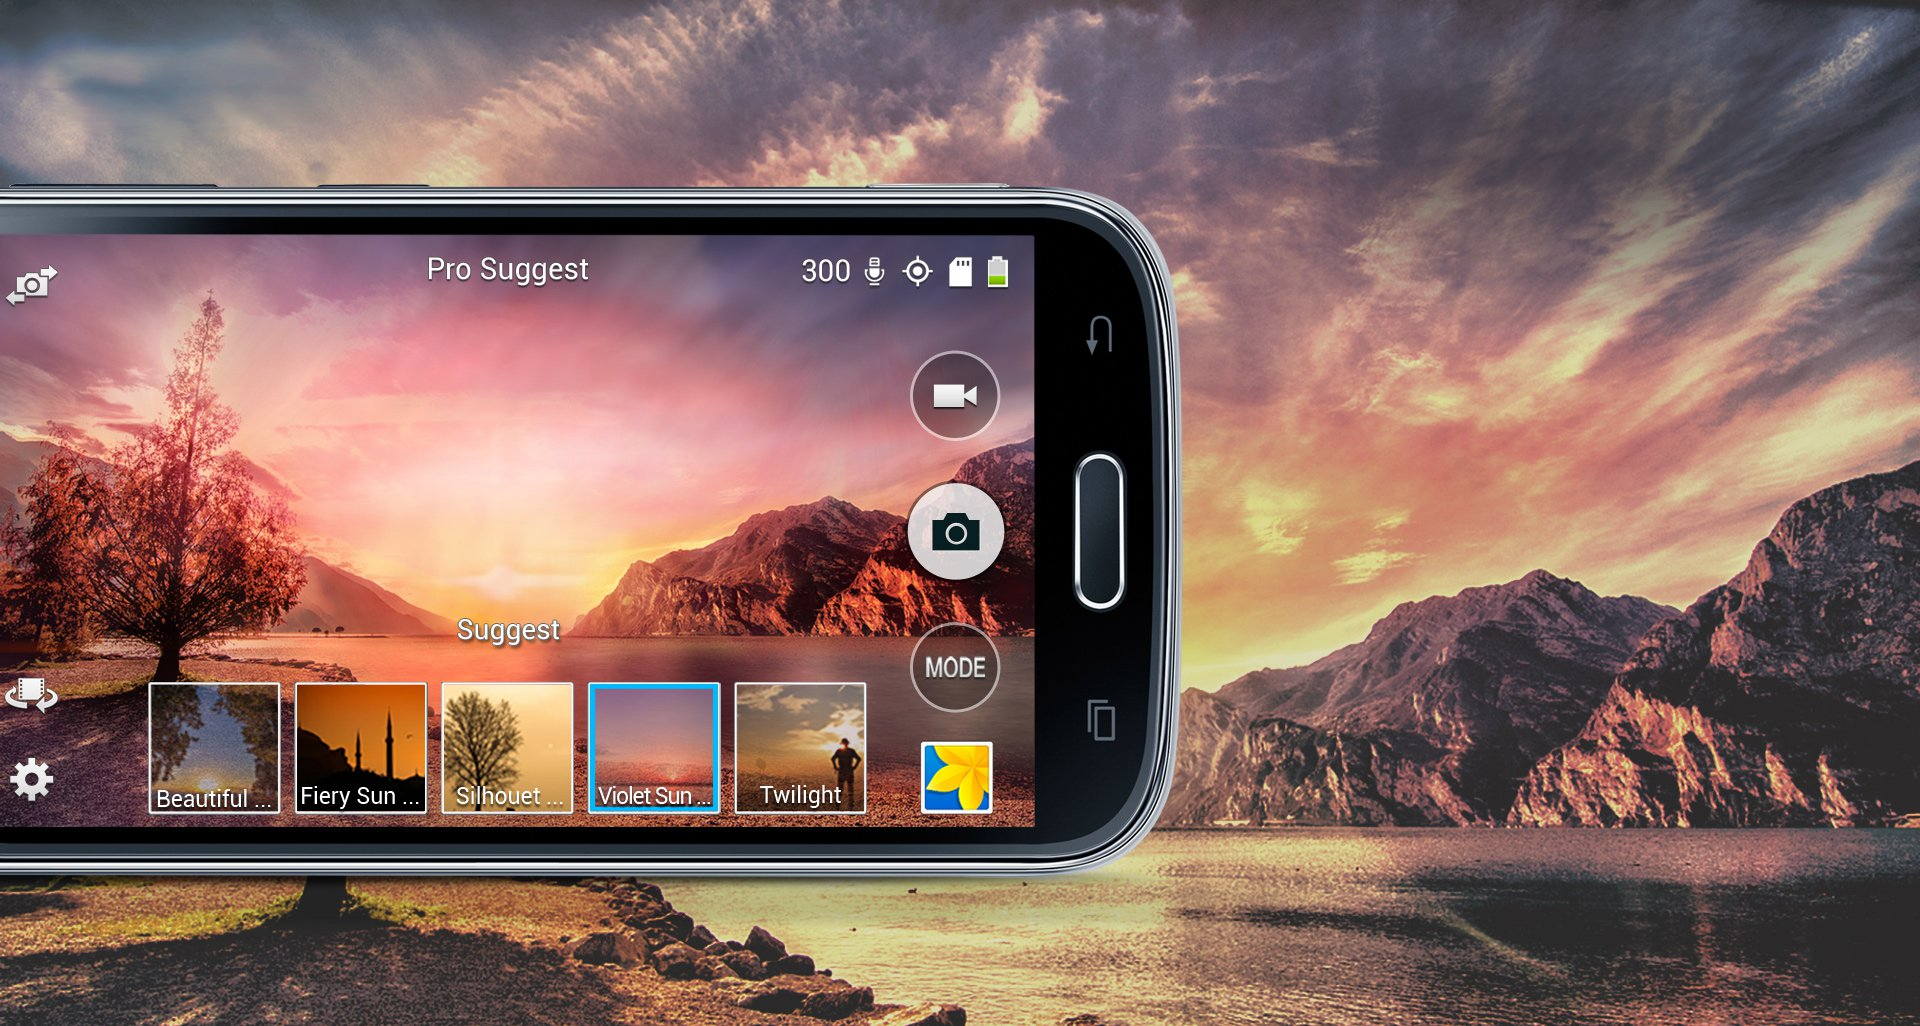 Samsung Galaxy K Zoom Headed To Canada Corporate Stores